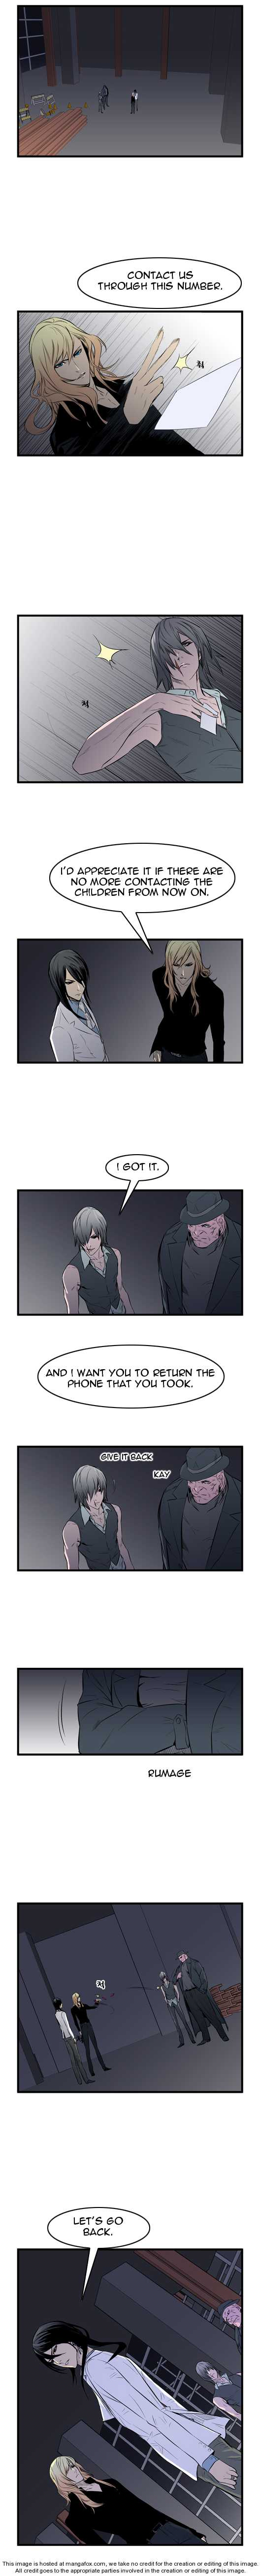 Noblesse 55 Page 4